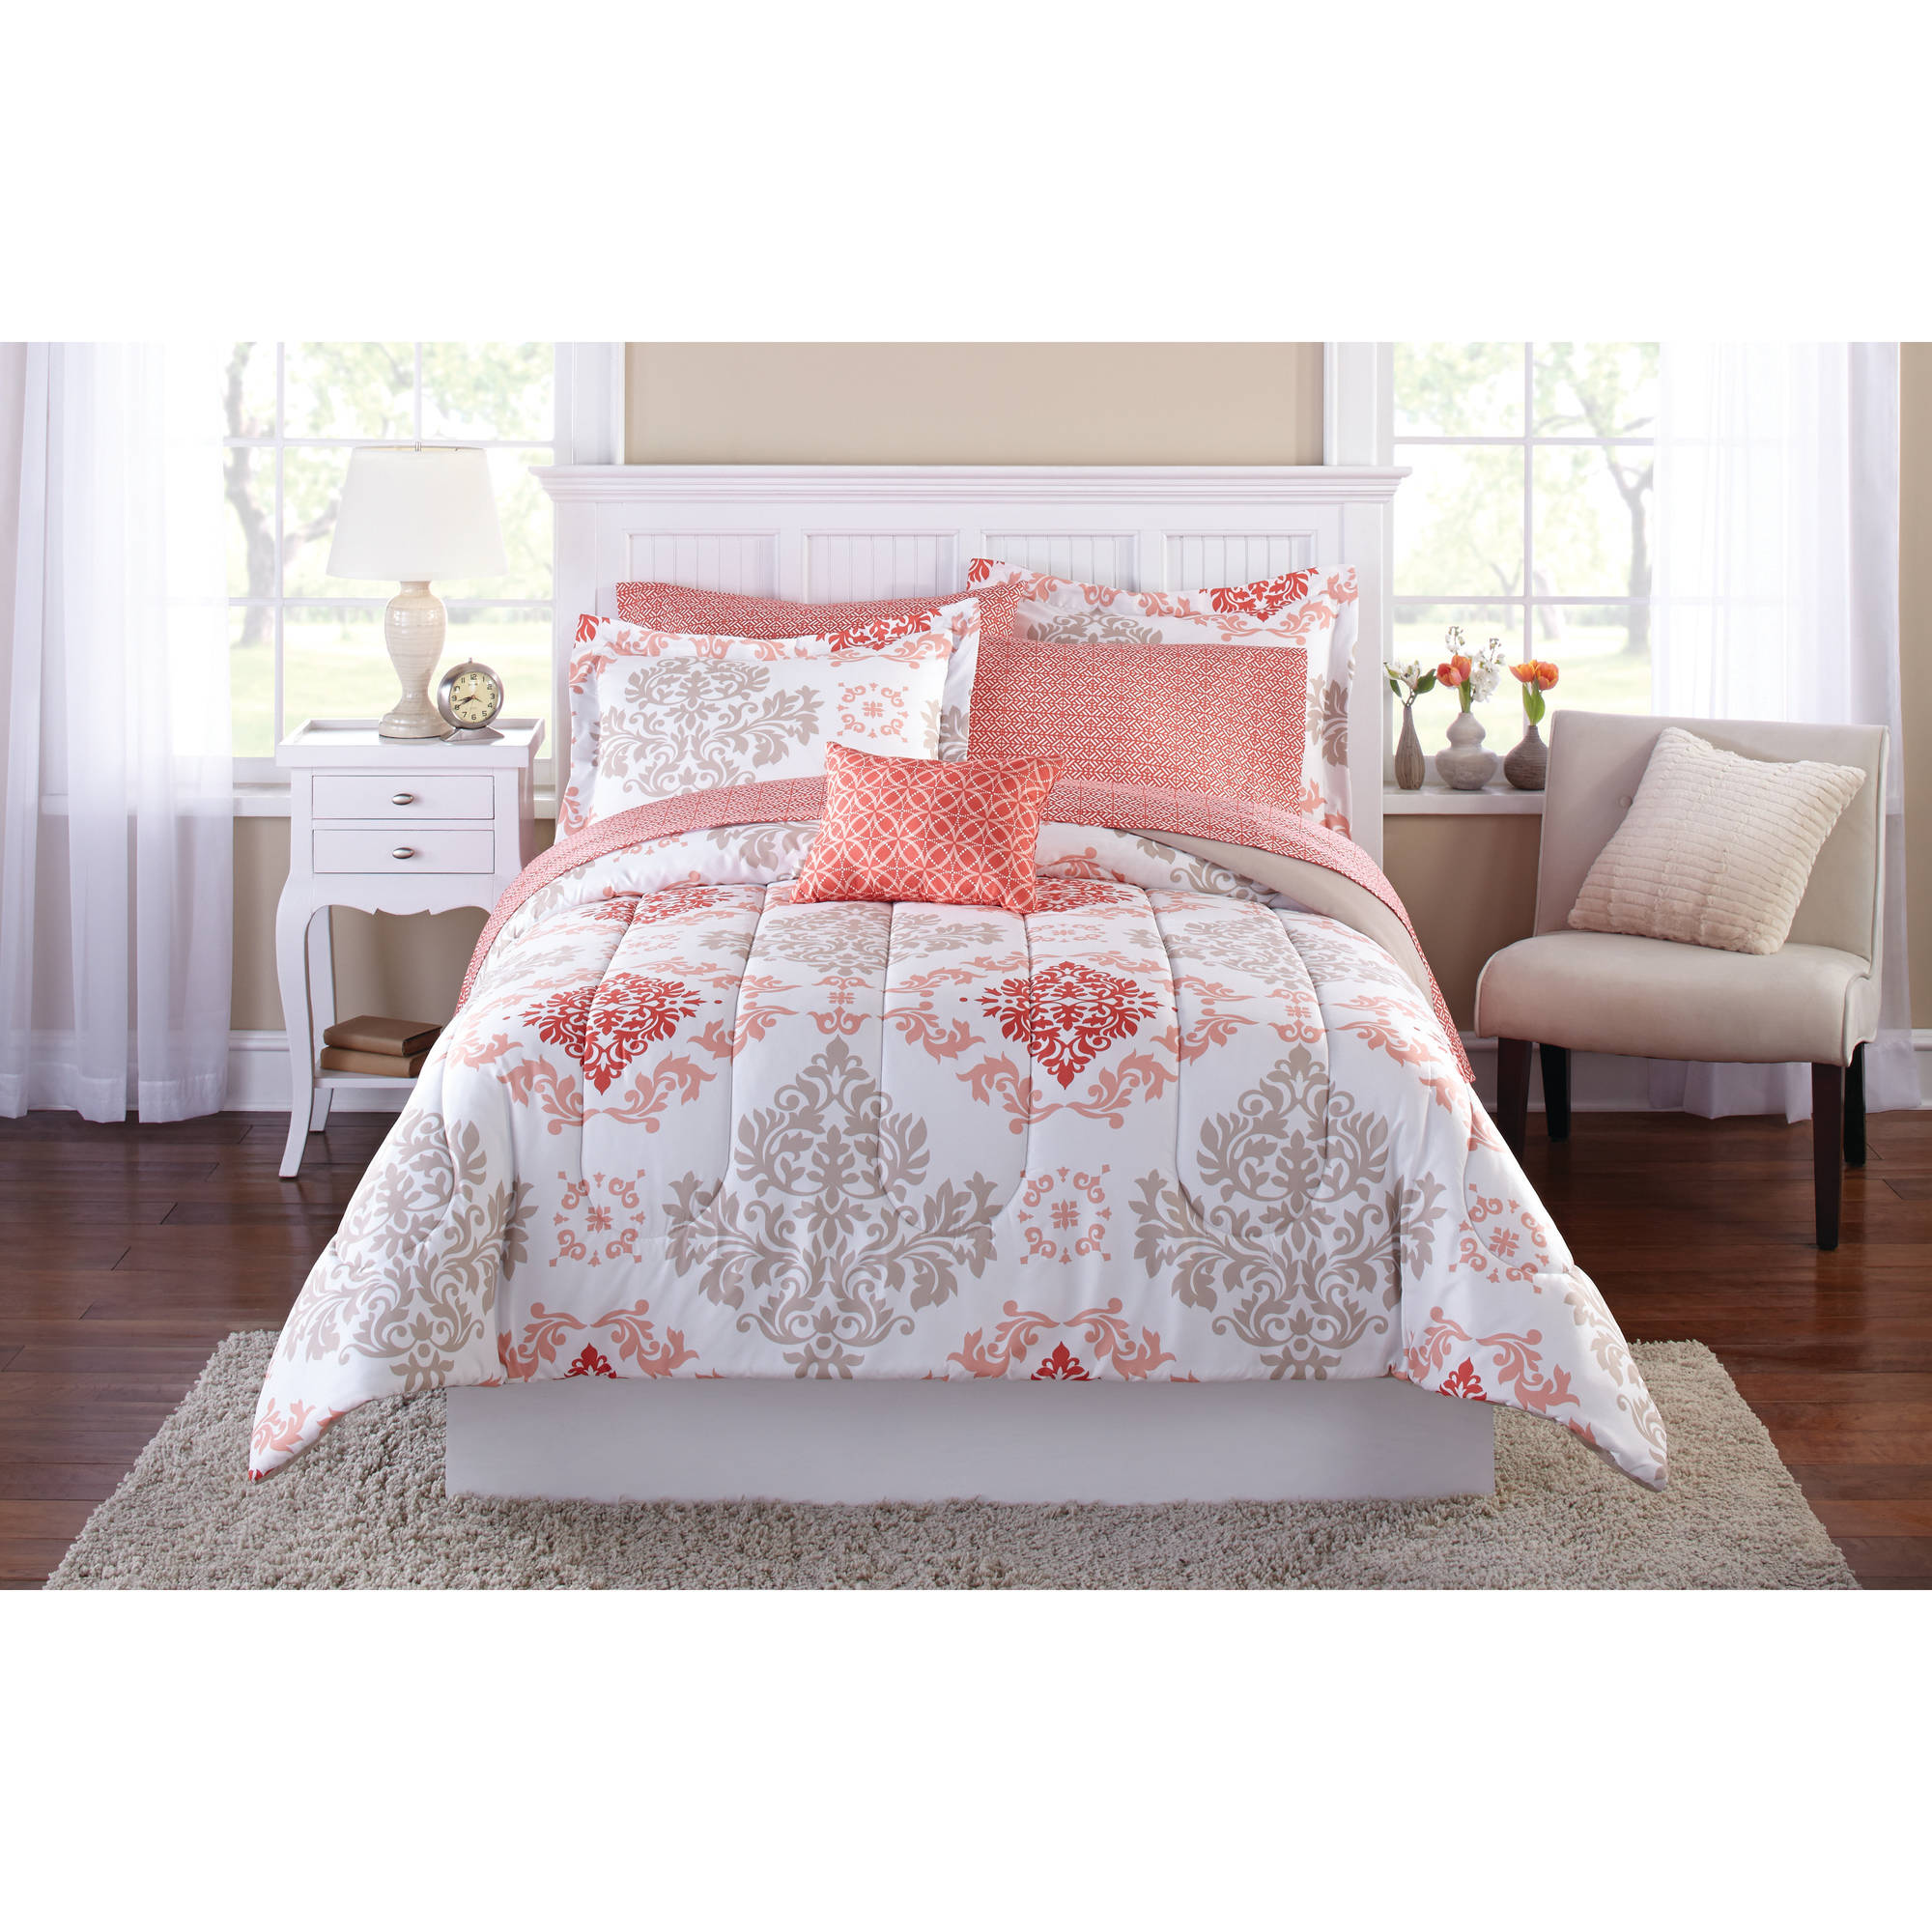 Bedroom gorgeous queen bedding sets for bedroom decoration ideas Queen bed and mattress